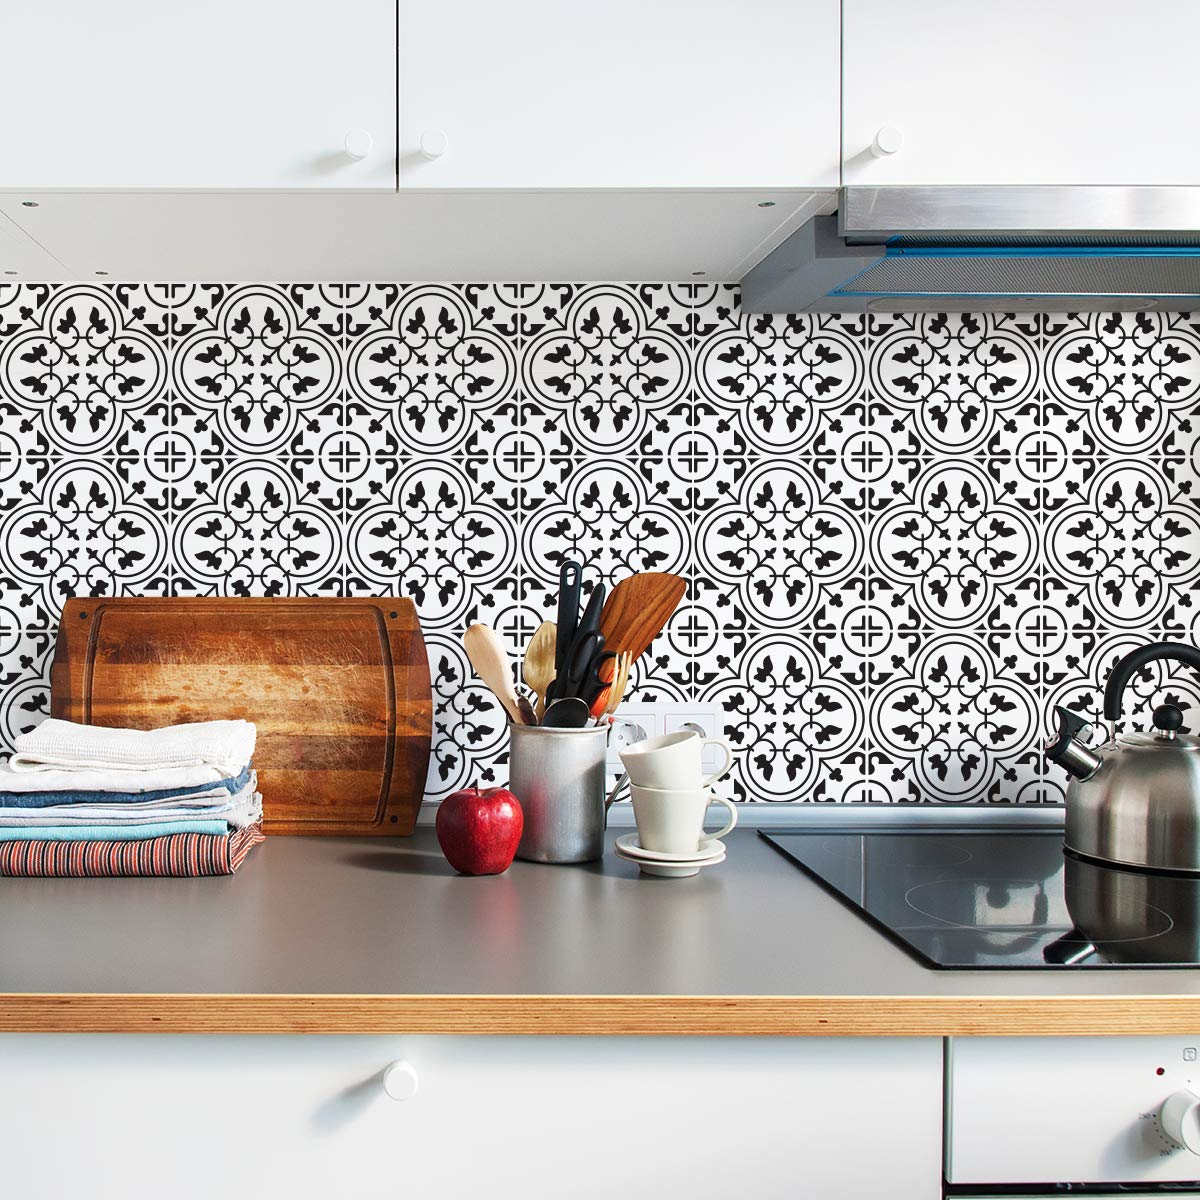 Sirface Moroccan Monochrome Tile Decals - Tile Stickers Set for Kitchen and Bathroom - PACK OF 24 - Different (6x6 inches | 15x15 cm)